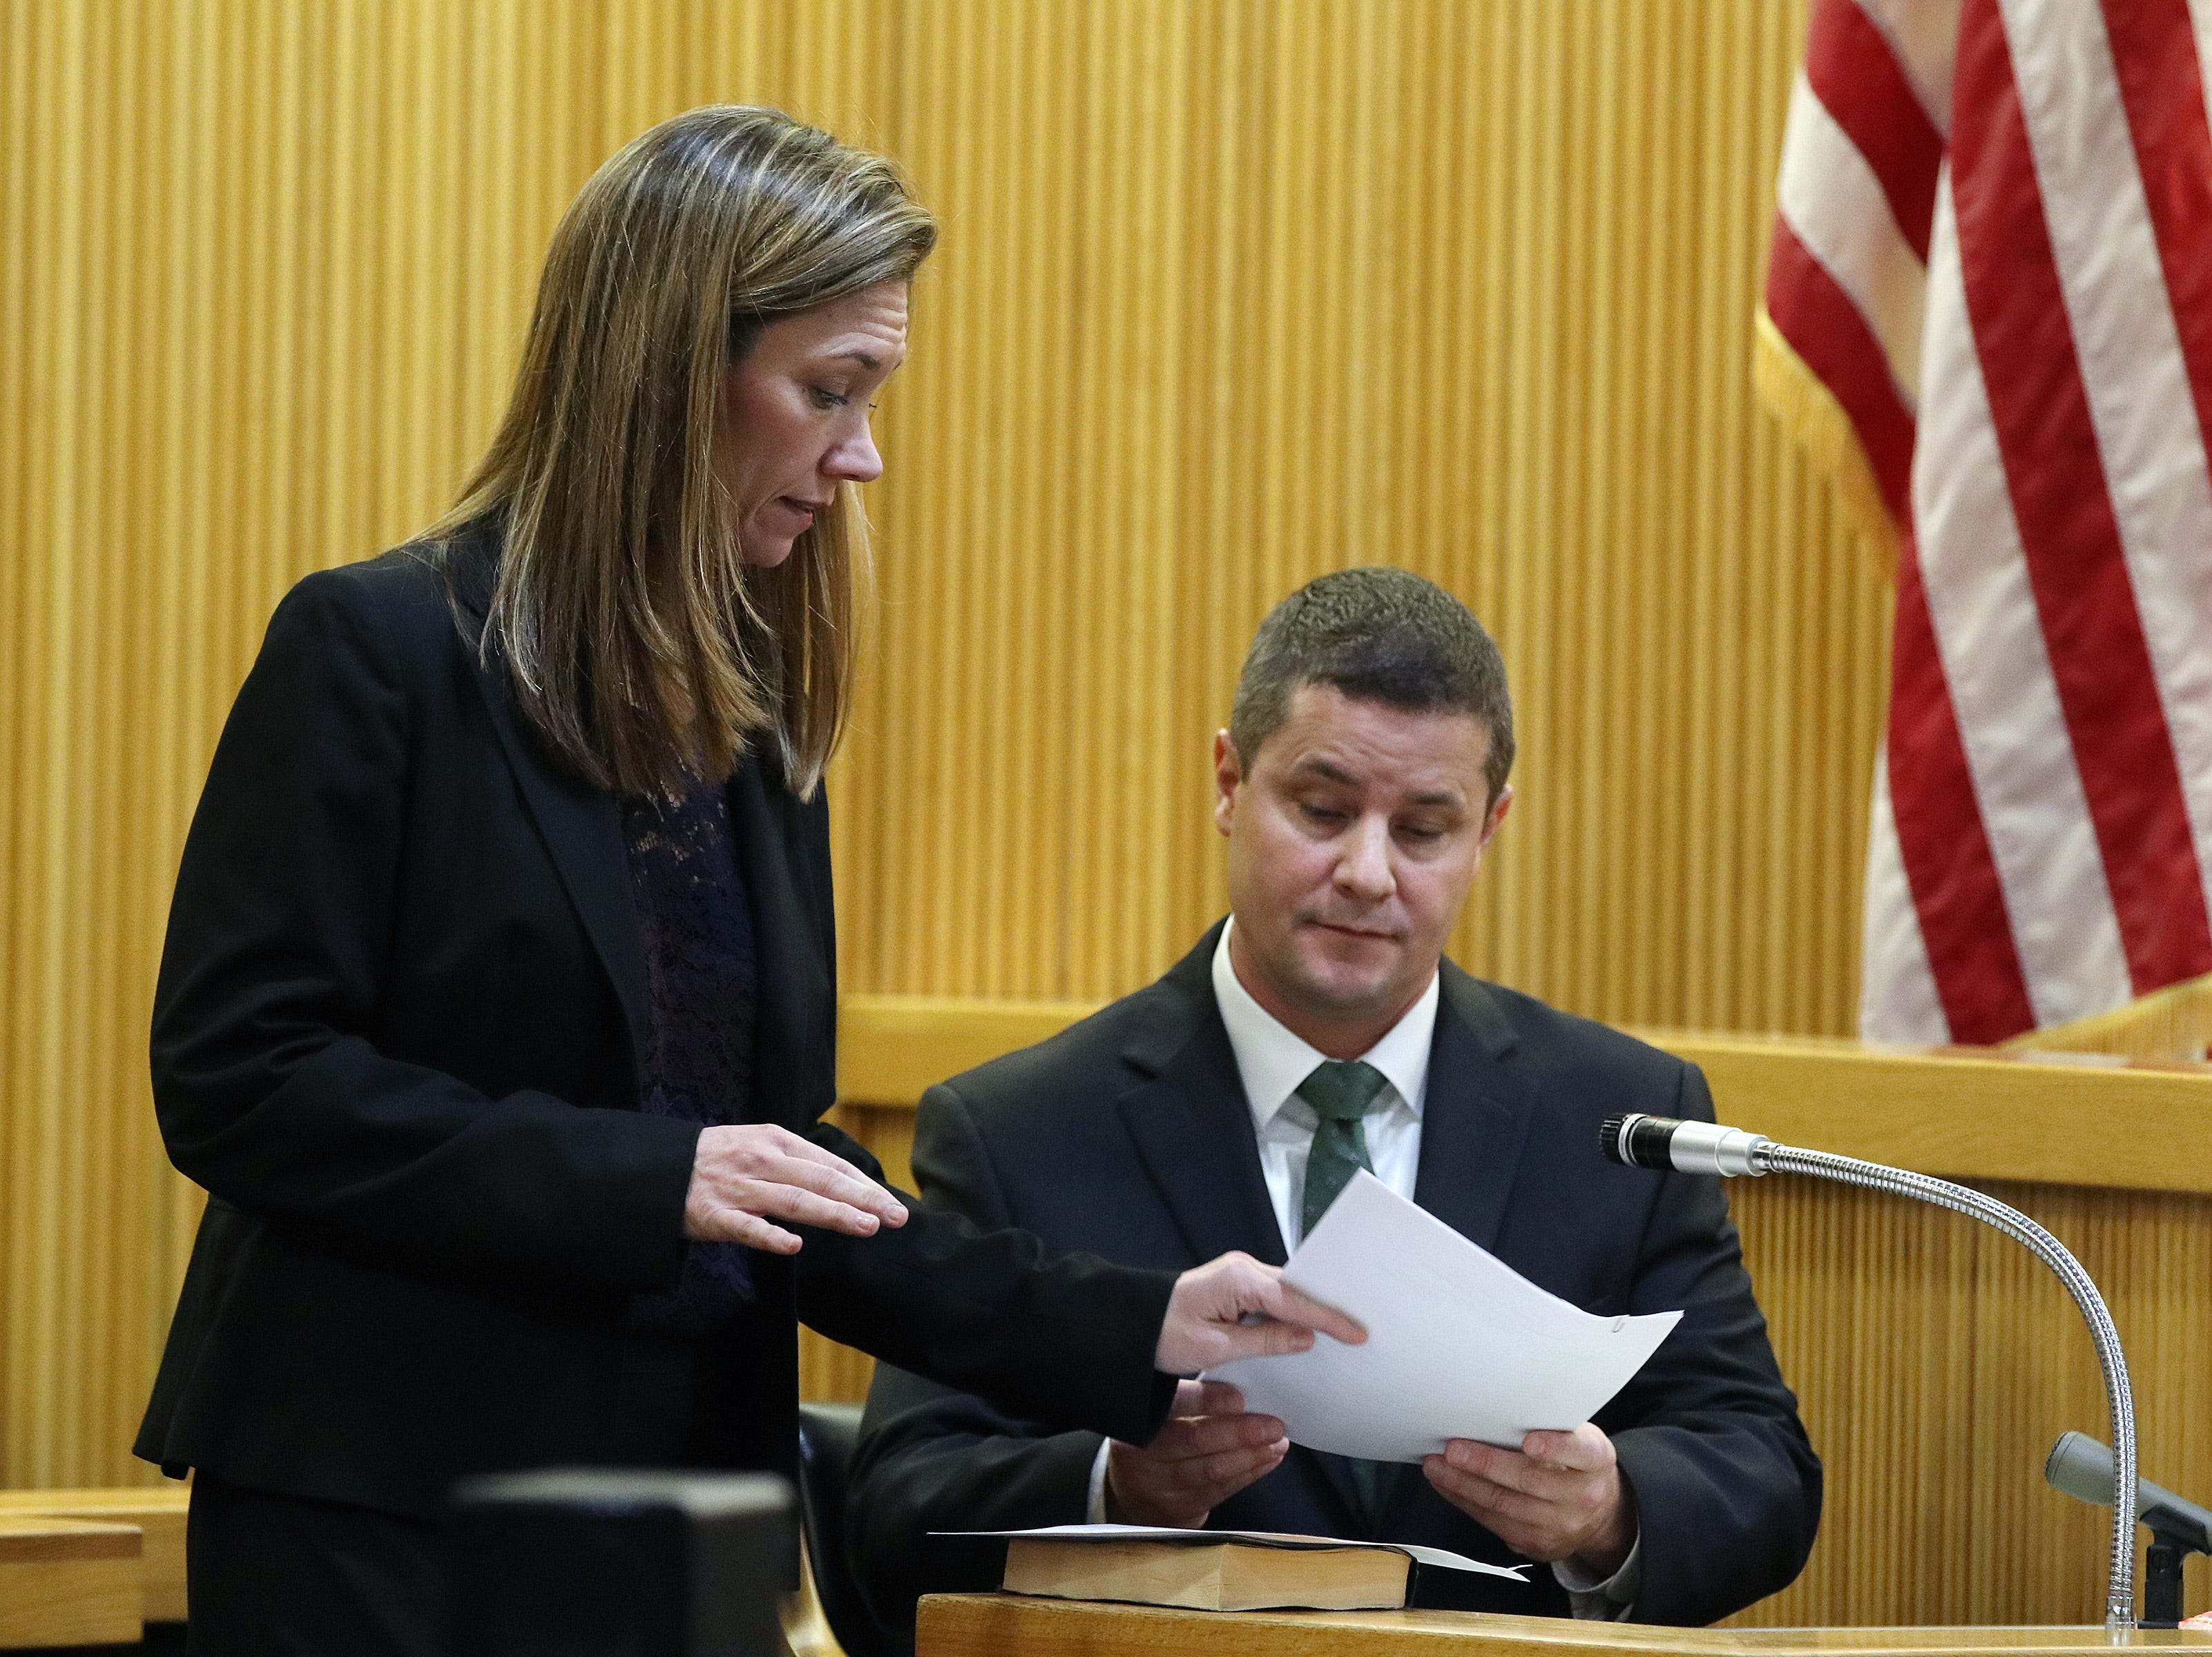 Meghan Doyle, Monmouth County assistant prosecutor, questions Kevin Mahoney, a detective at the Monmouth County Prosecutor's Office, during the trial of Liam McAtasney, who is charged with the murder of former high school classmate, Sarah Stern, before Superior Court Judge Richard W. English at the Monmouth County Courthouse in Freehold, NJ Thursday January 24, 2019.